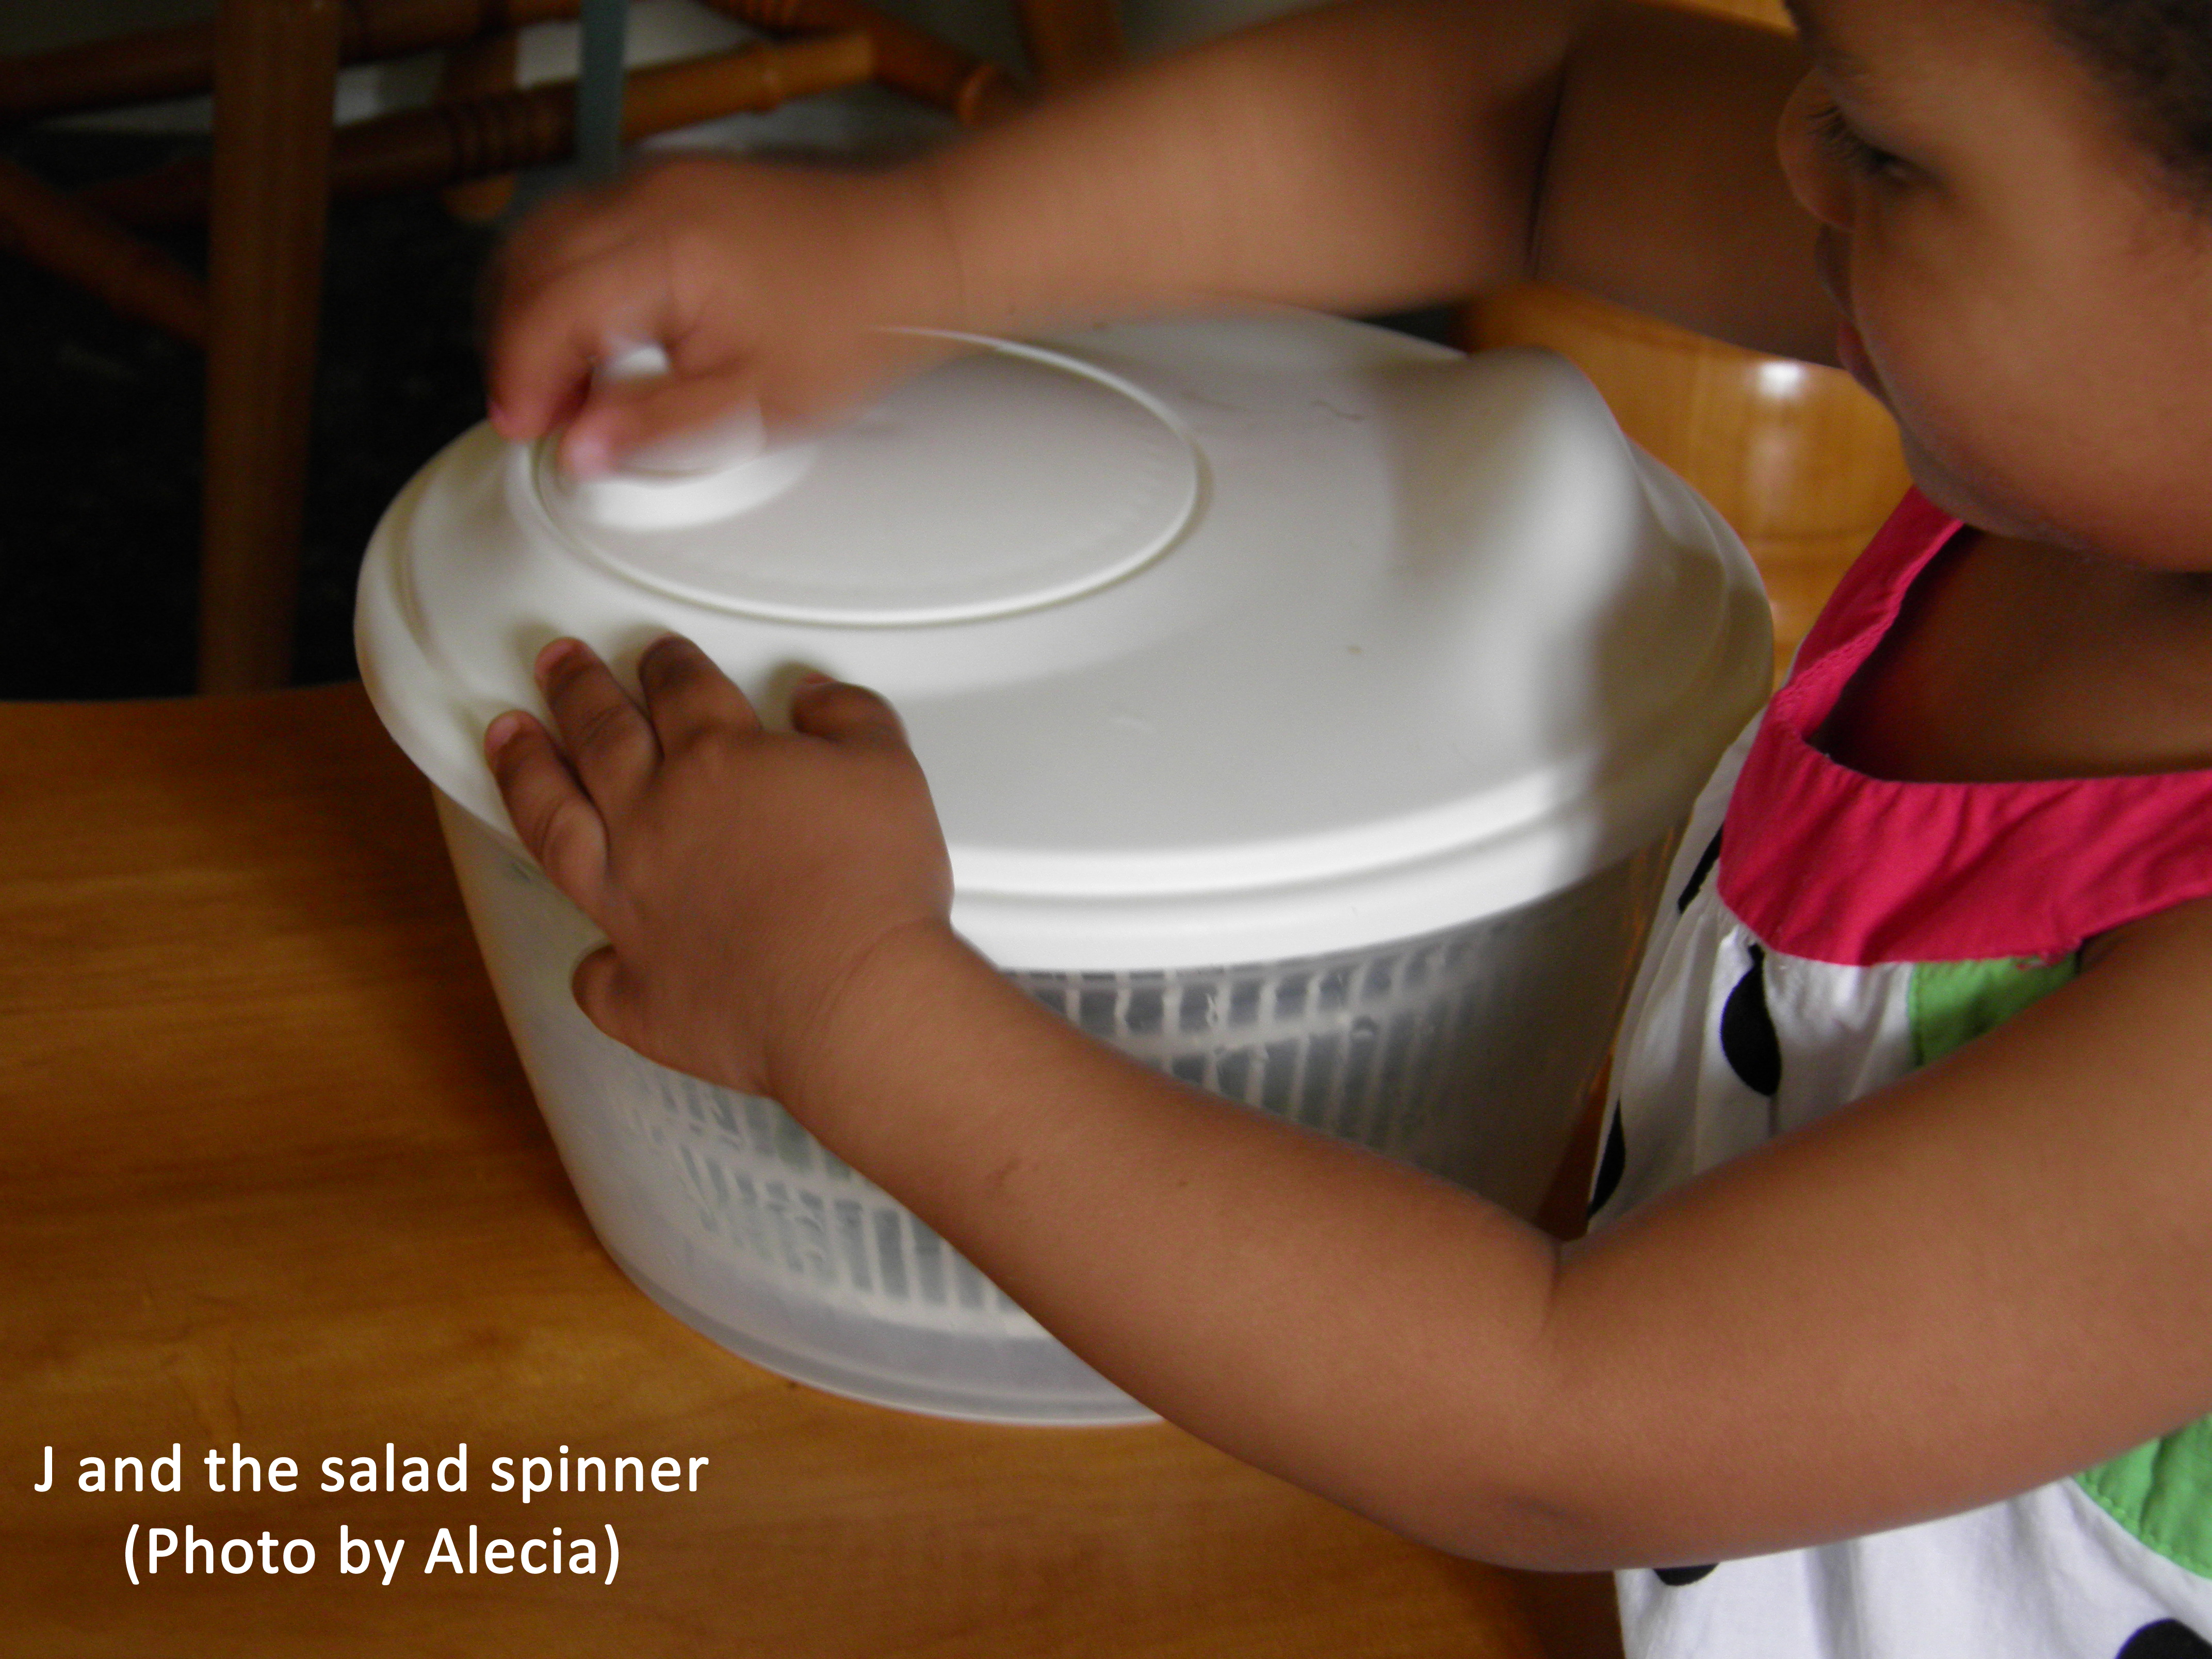 J and the salad spinner